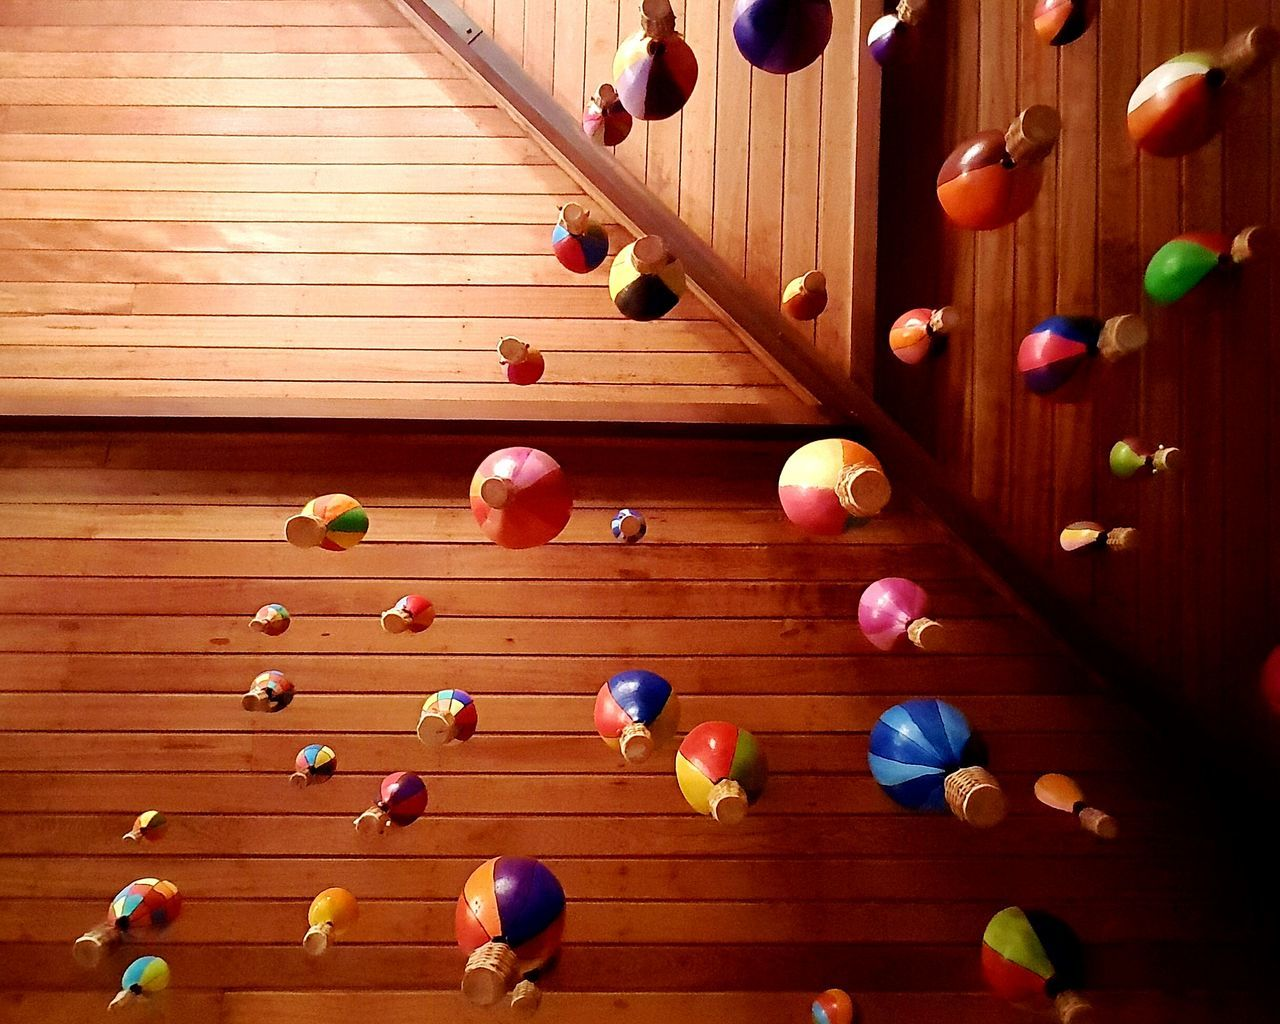 Wood - Material Directly Above No People Multi Colored Indoors  Childhood Day Space Close-up Popular The Week On EyeEem Baloons Baloon On Air Looking Up Beautifully Organized